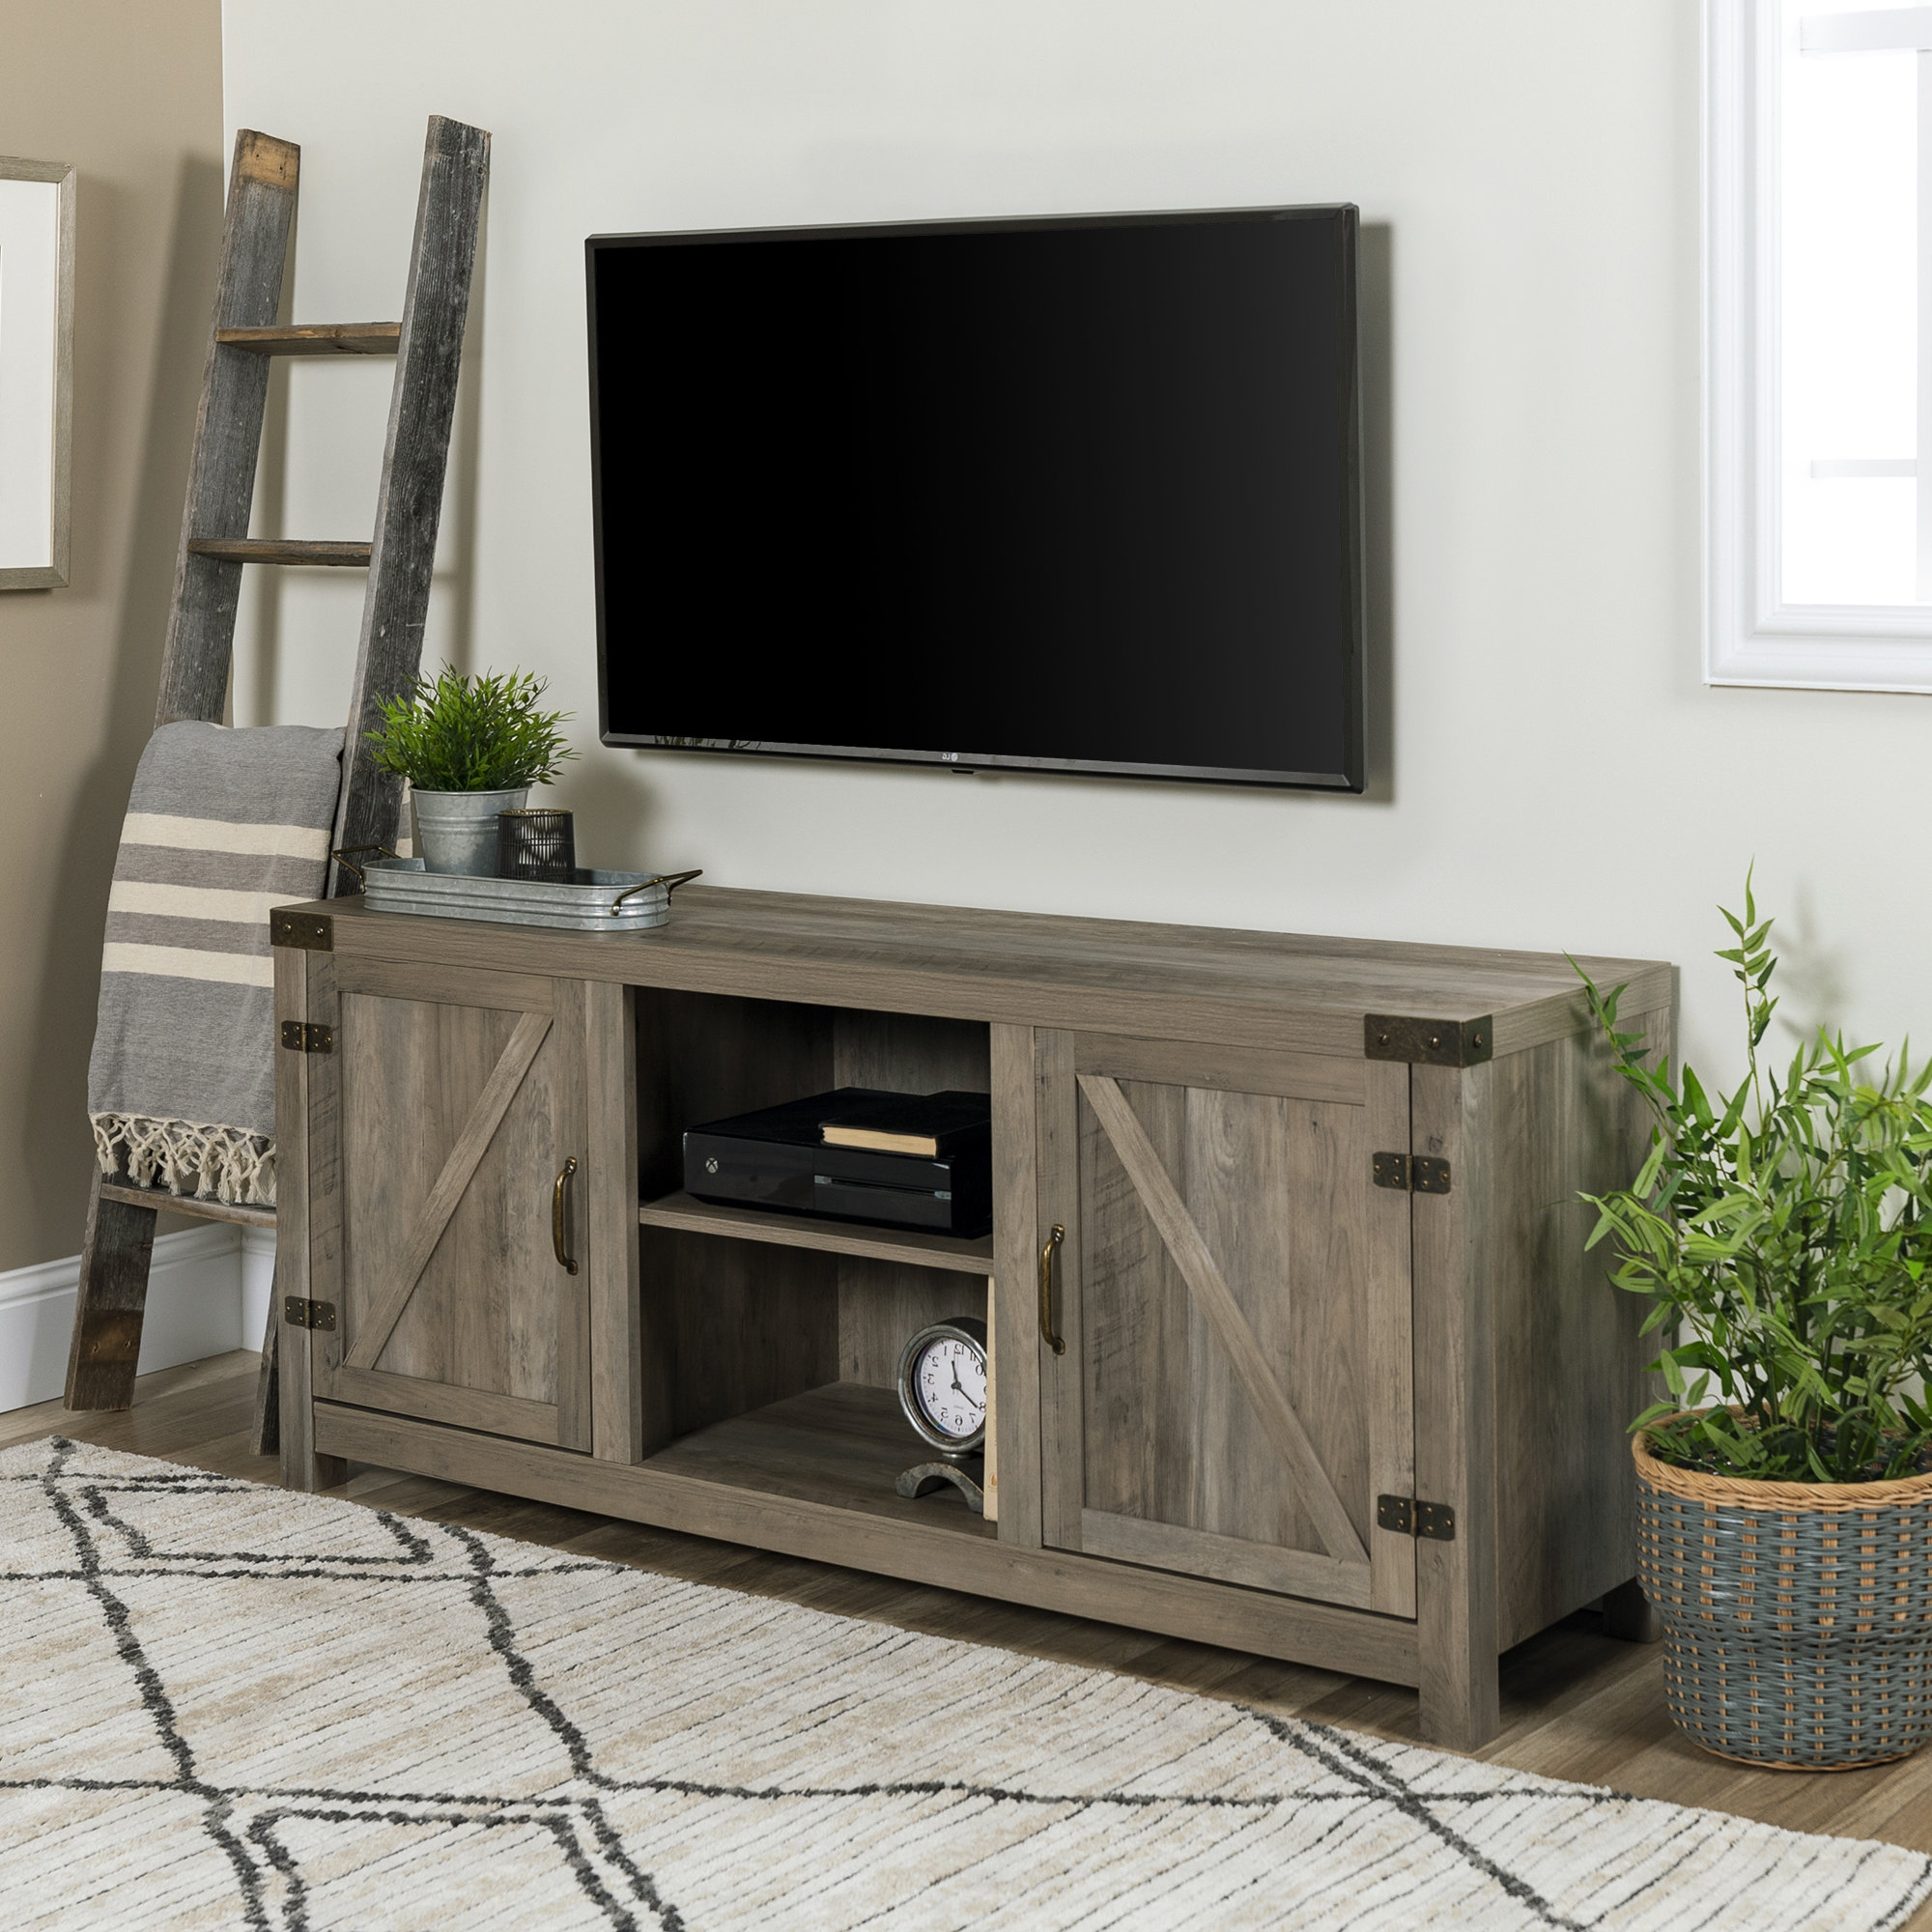 Cheap Corner Tv Stands For Flat Screen Within Well Known 55 In Corner Tv Stand (View 7 of 20)